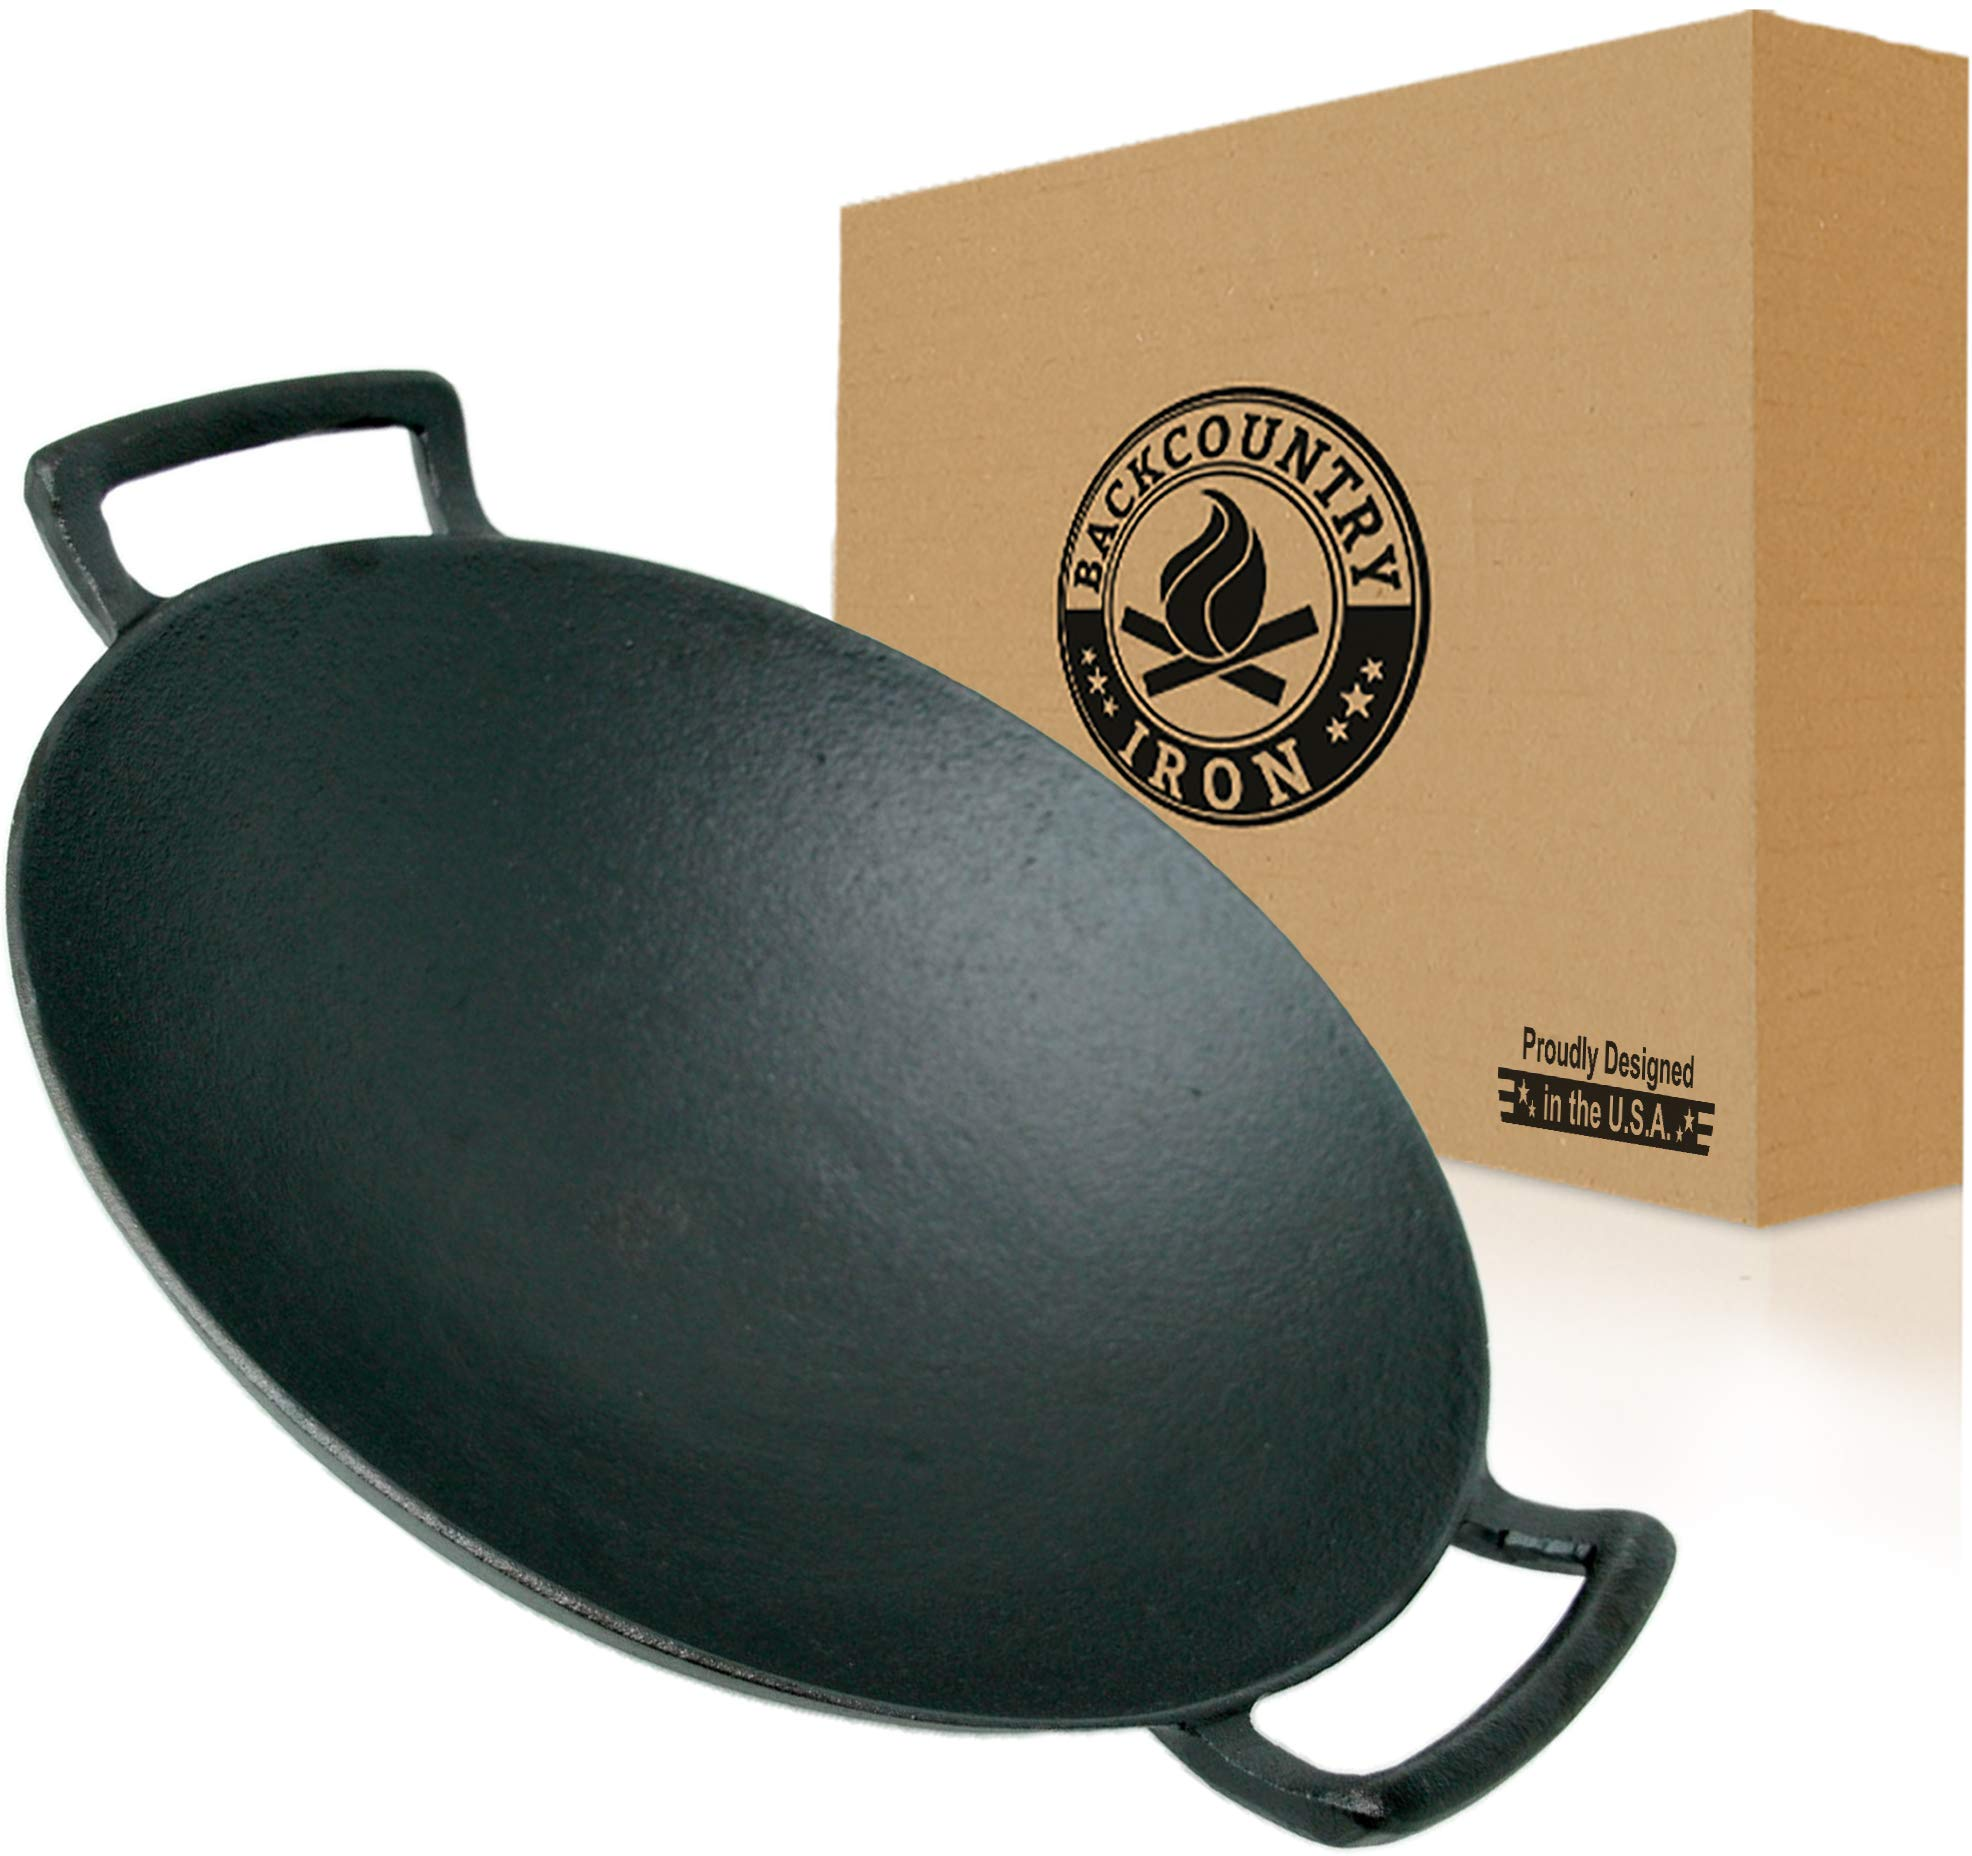 Backcountry Iron's Cast Iron Wok for Stir Frys and Sautees (14 Inch Large, Pre-Seasoned for Non-Stick Like Surface, Cookware Oven/Broiler/Grill Safe, Kitchen Deep Fryer, Restaurant Chef Quality)